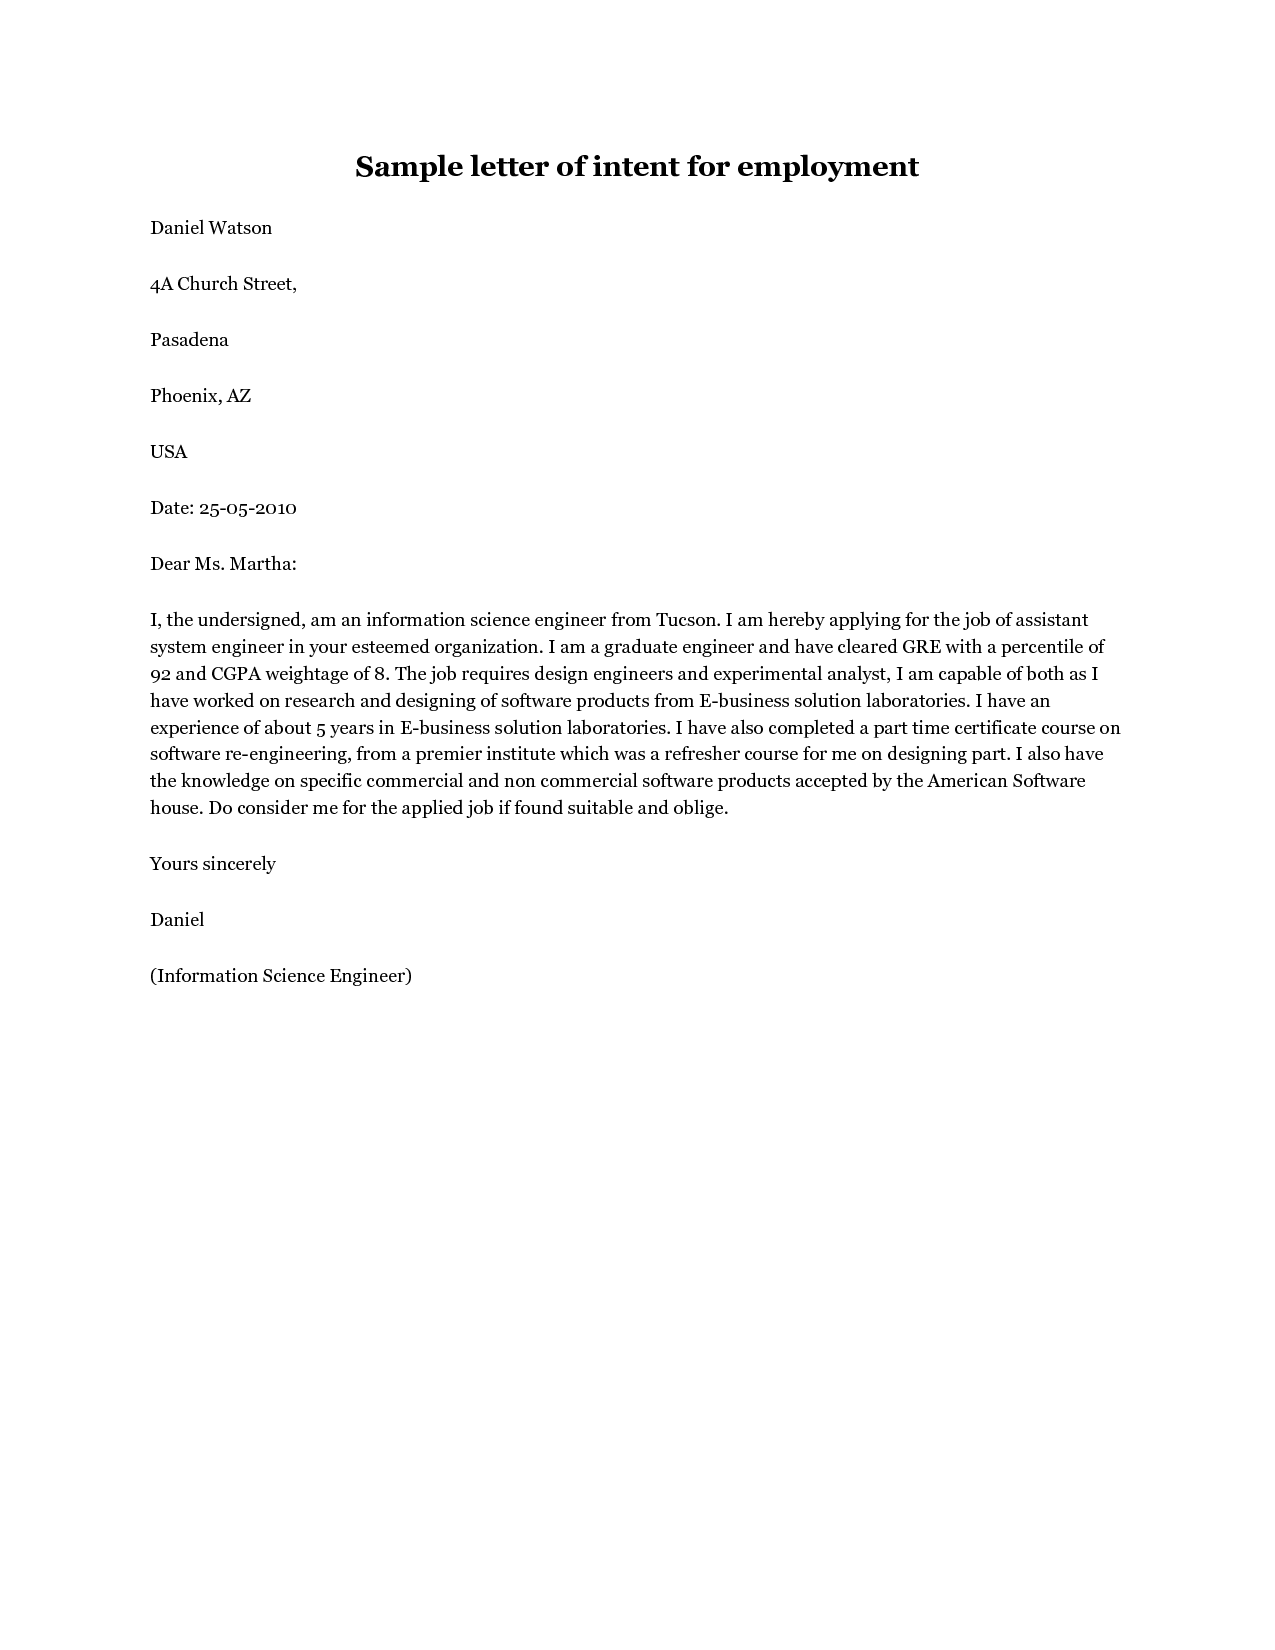 Sample Letter of Intent Job Application sample letter of intent for  employment